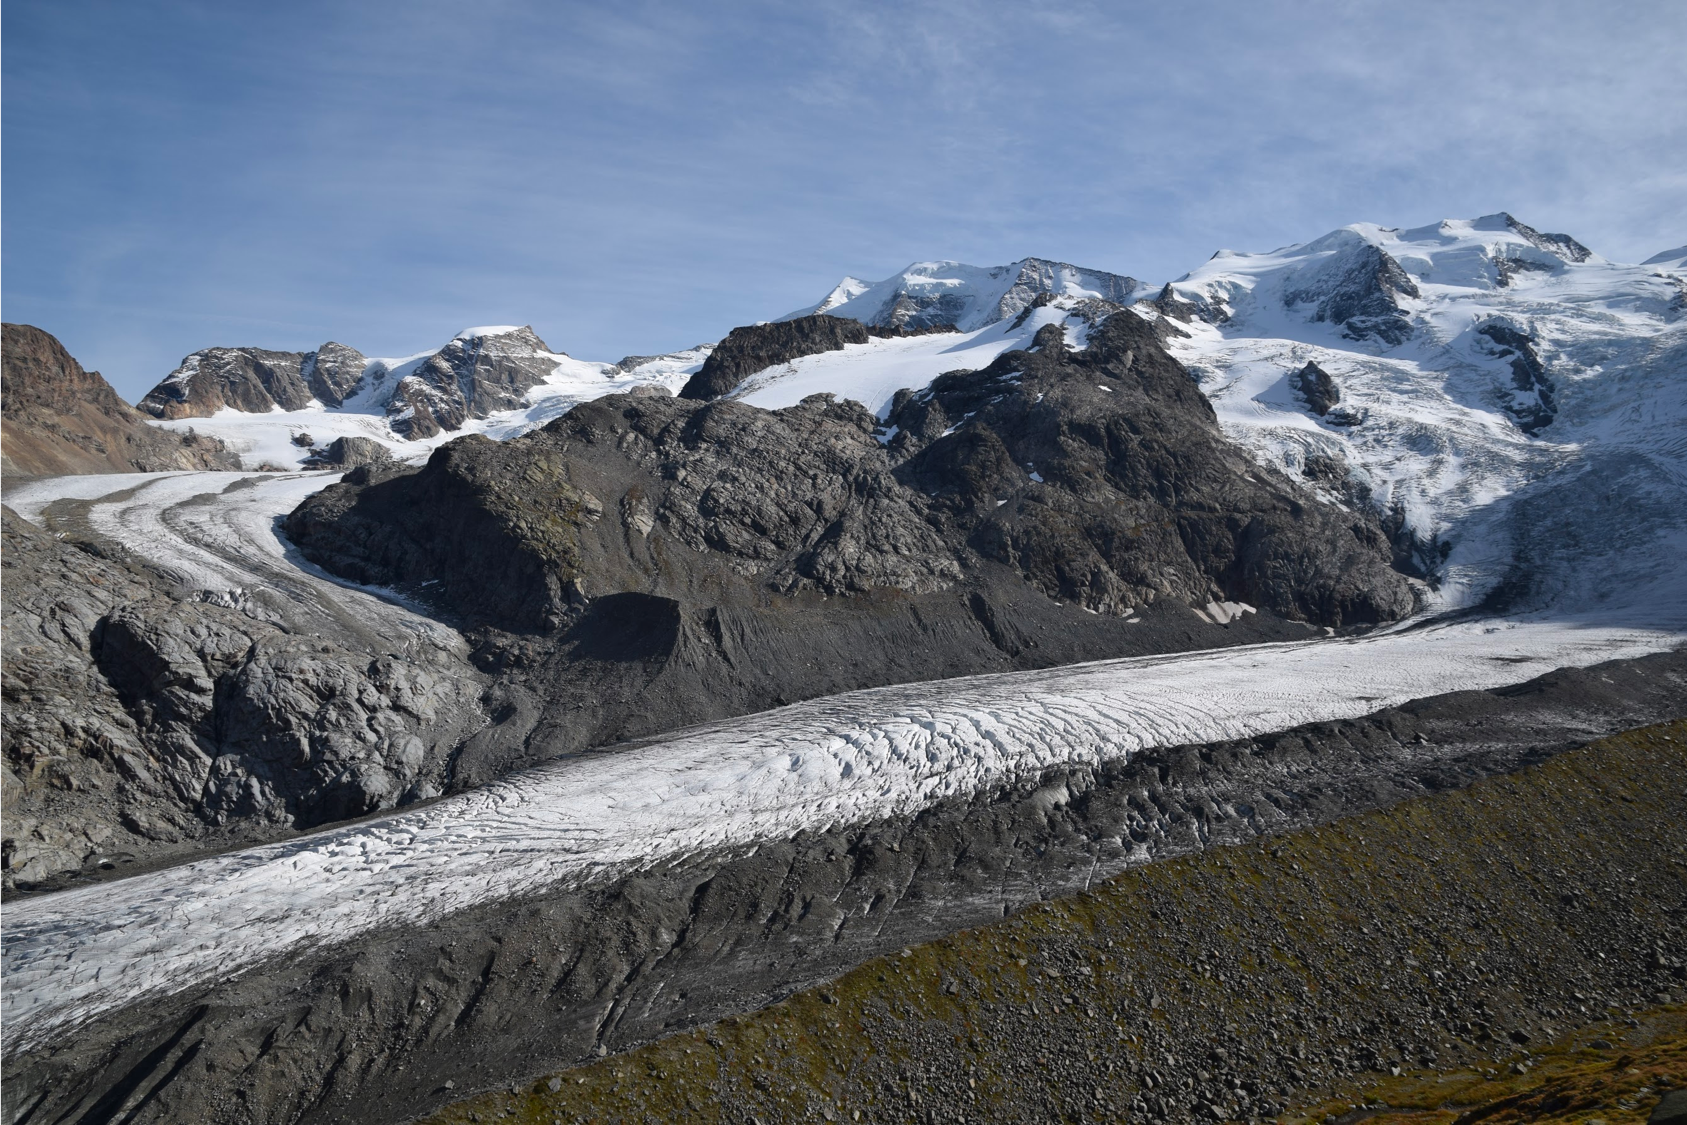 Annual field work is conducted on the Morteratsch and Pers glaciers in Switzerland